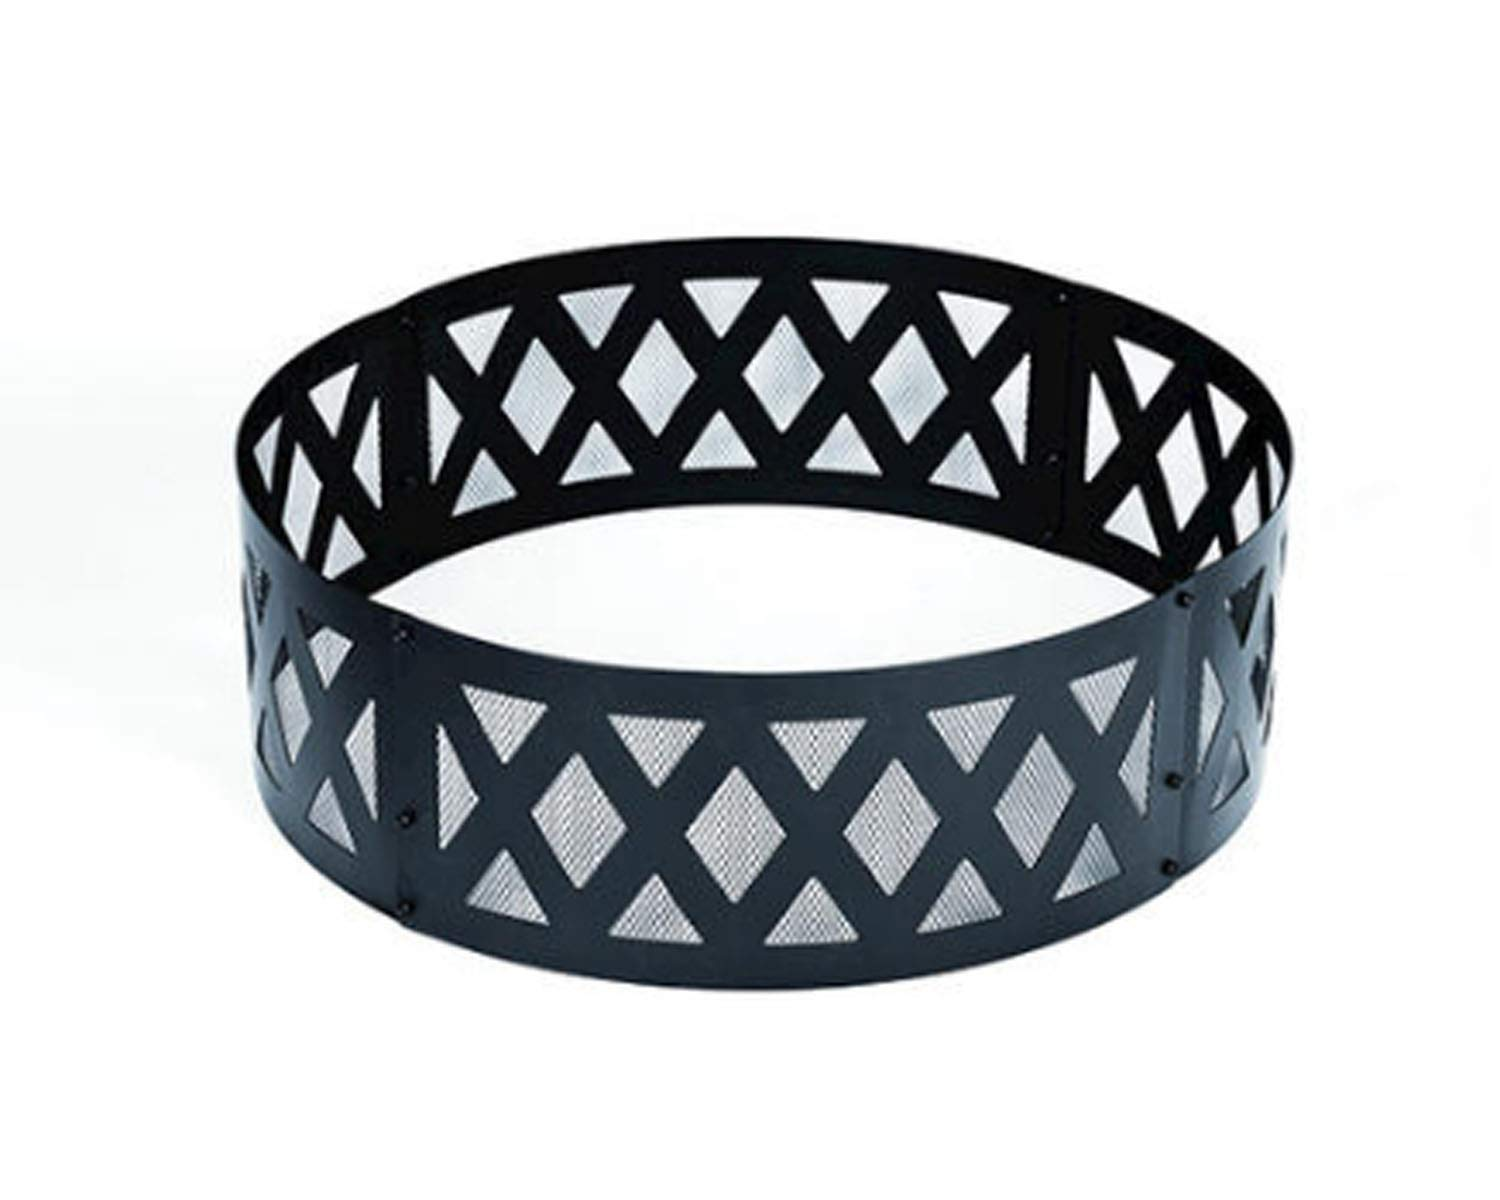 Wisechoice Lattice Heavy Duty Fire Ring | Ideal for Keeping Campfires Contained by Wisechoice